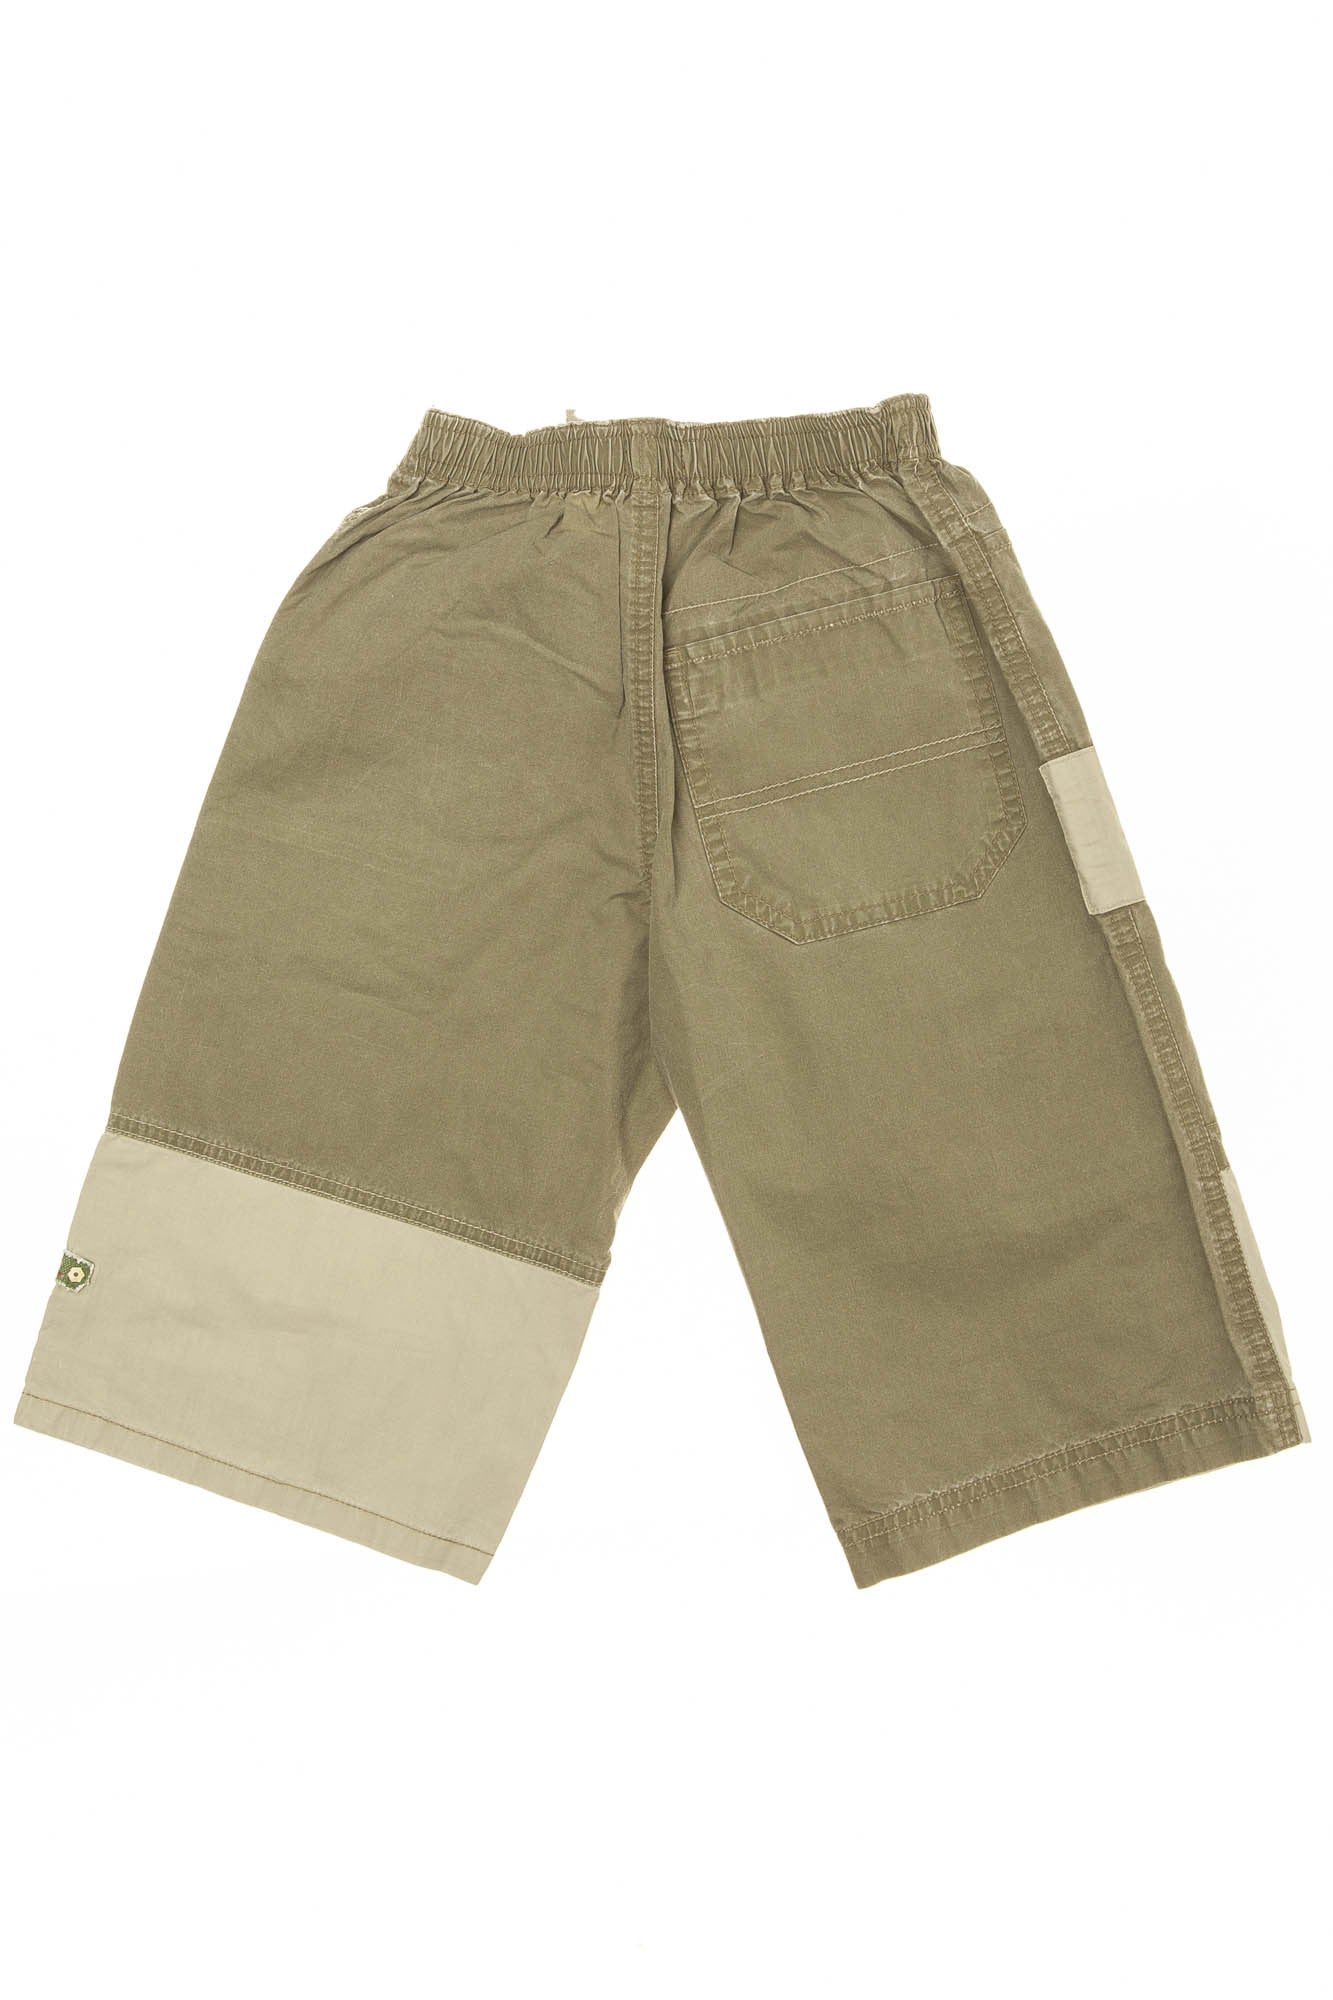 4bc9e55d24 Diesel - Olive Green Cargo Shorts - S – LUXHAVE